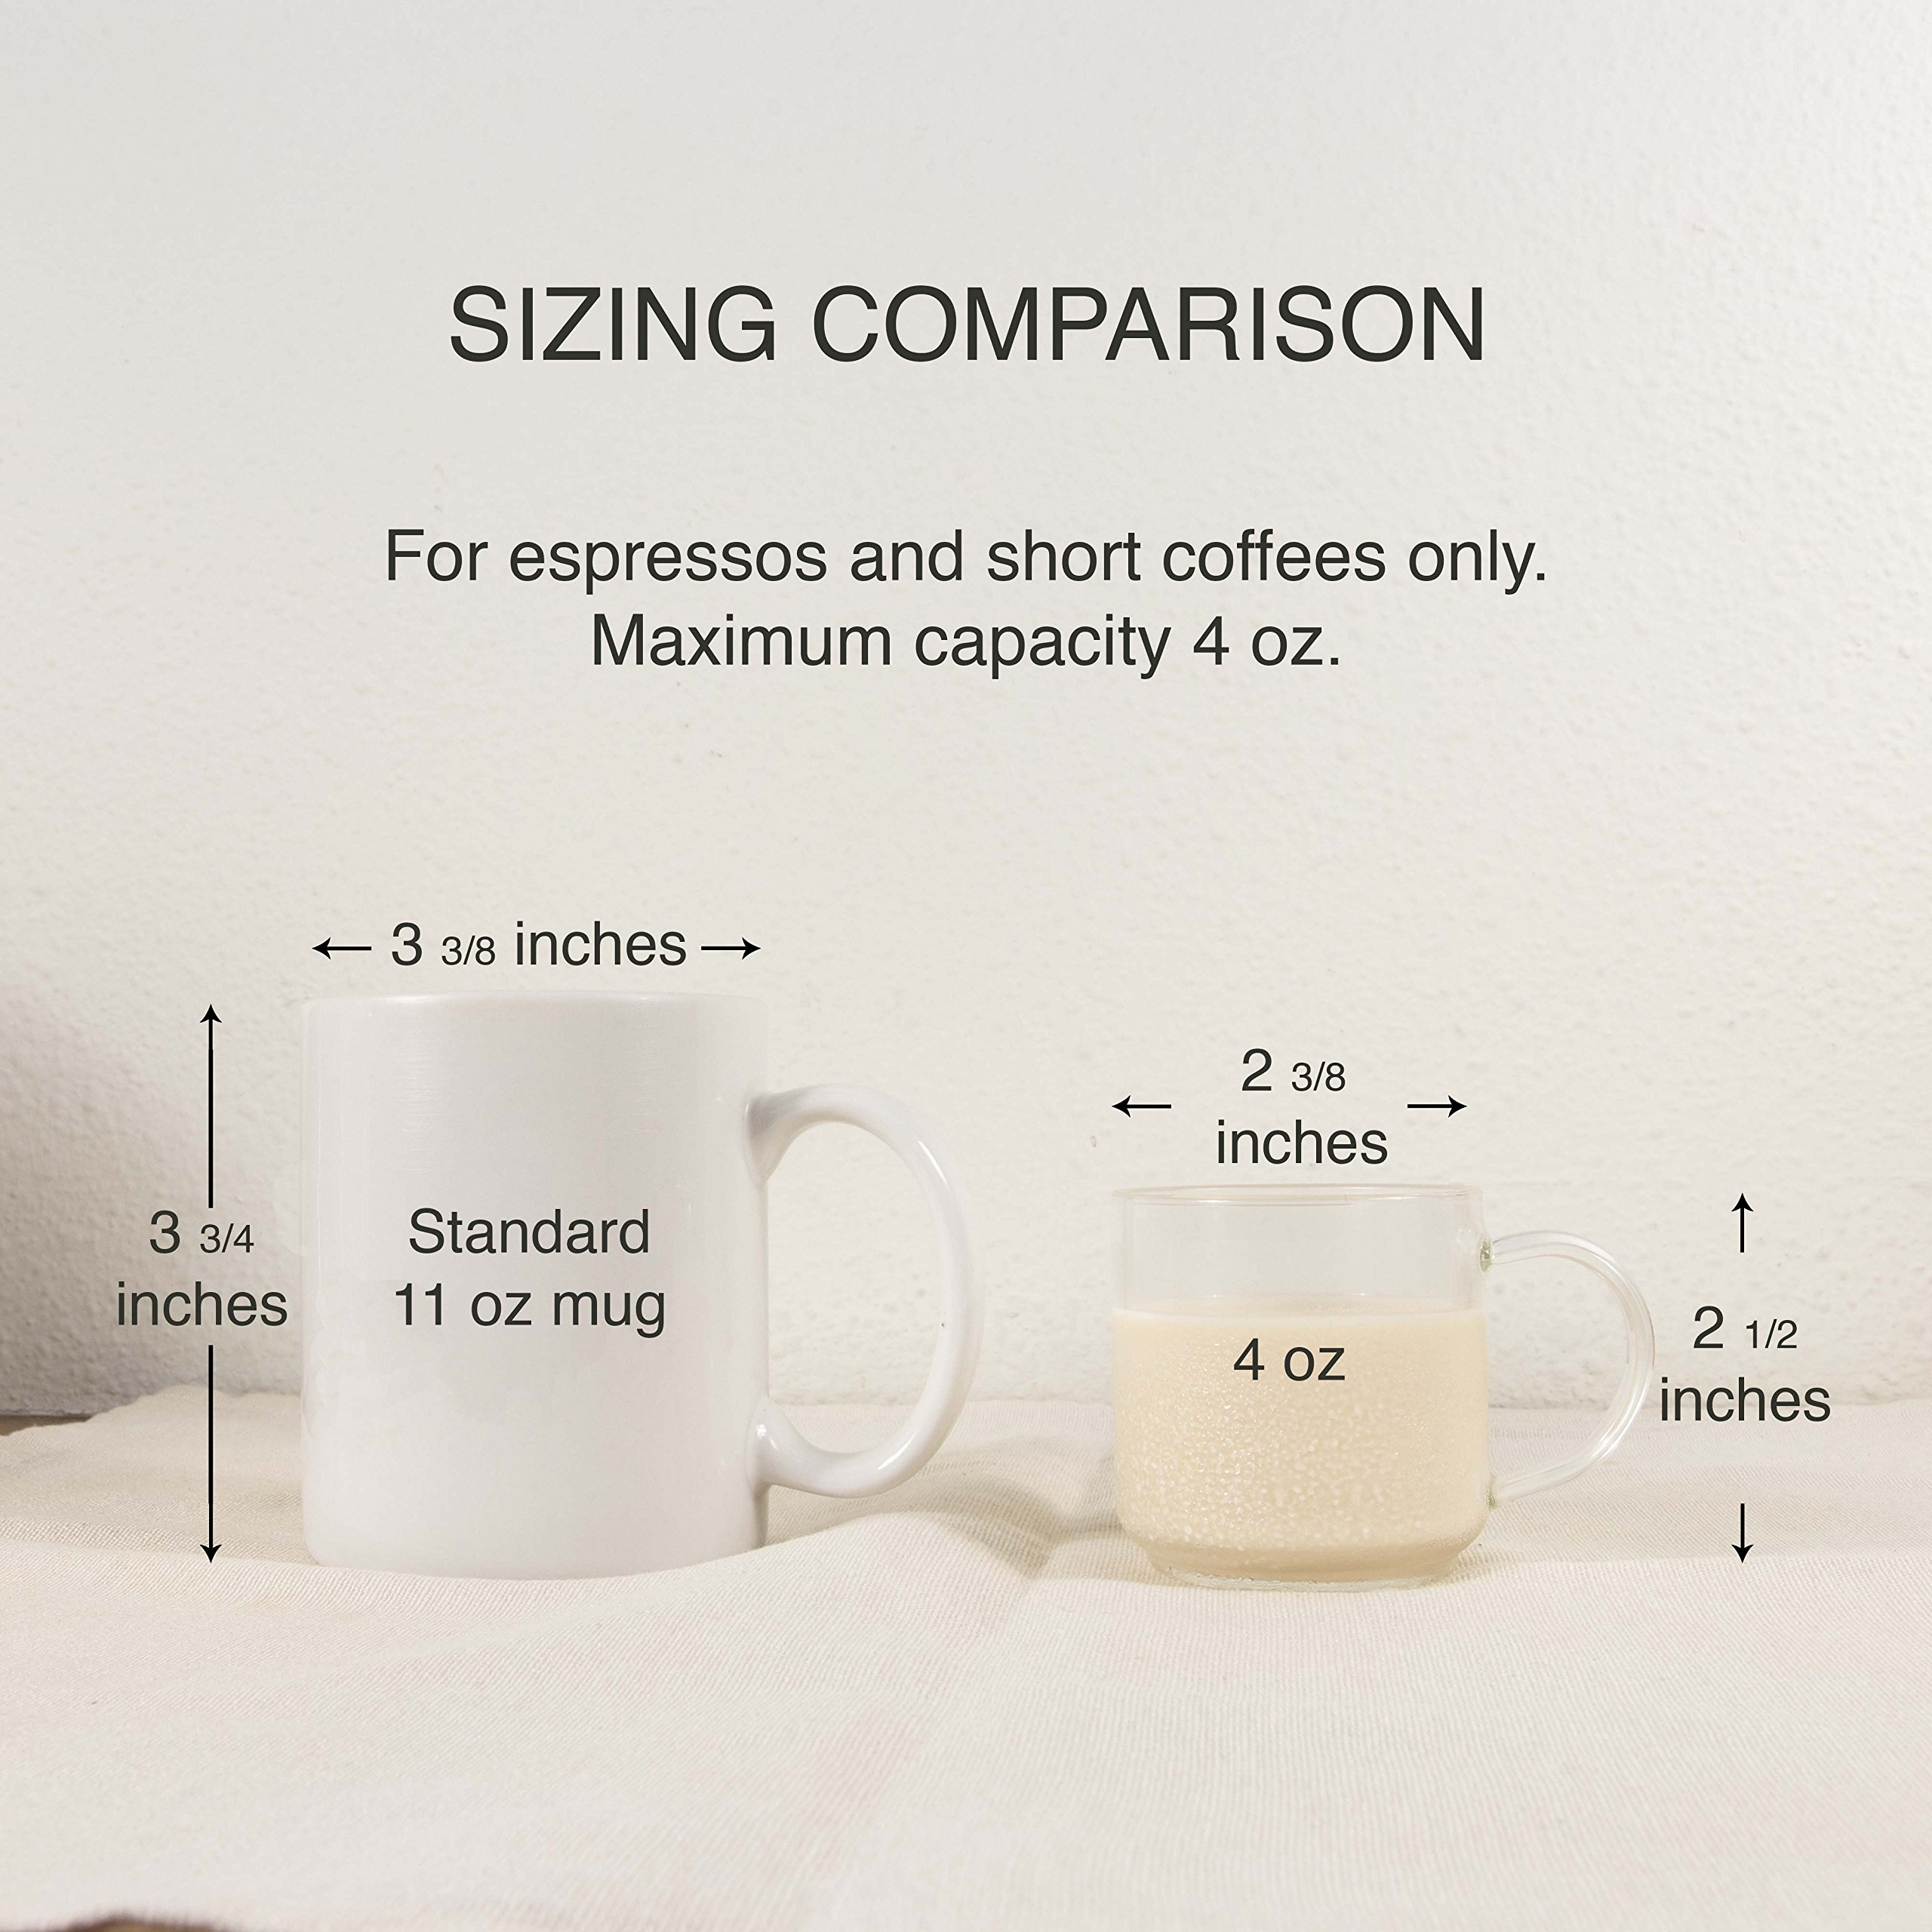 Zenco 4 oz (125ml) Coffee Glass Cups with Large Handle (Set of 6) - Perfect size for Nespresso Lungo, Single/Double Espresso, Juice or Sake by zenco (Image #7)